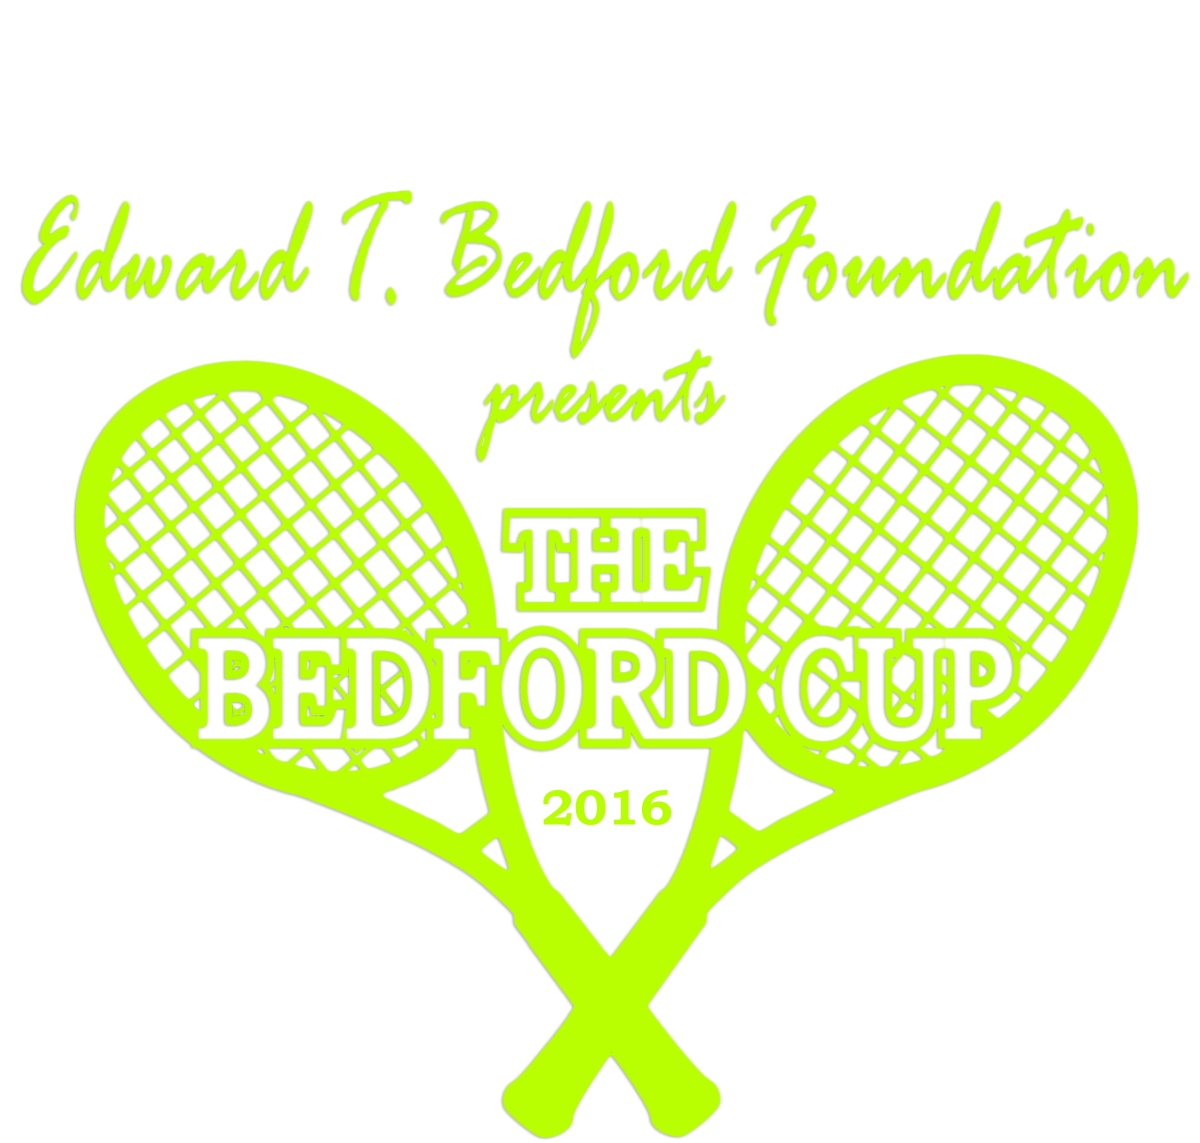 bedford-cup-2016-just-rackets-trasp-jtcc-color-with-year